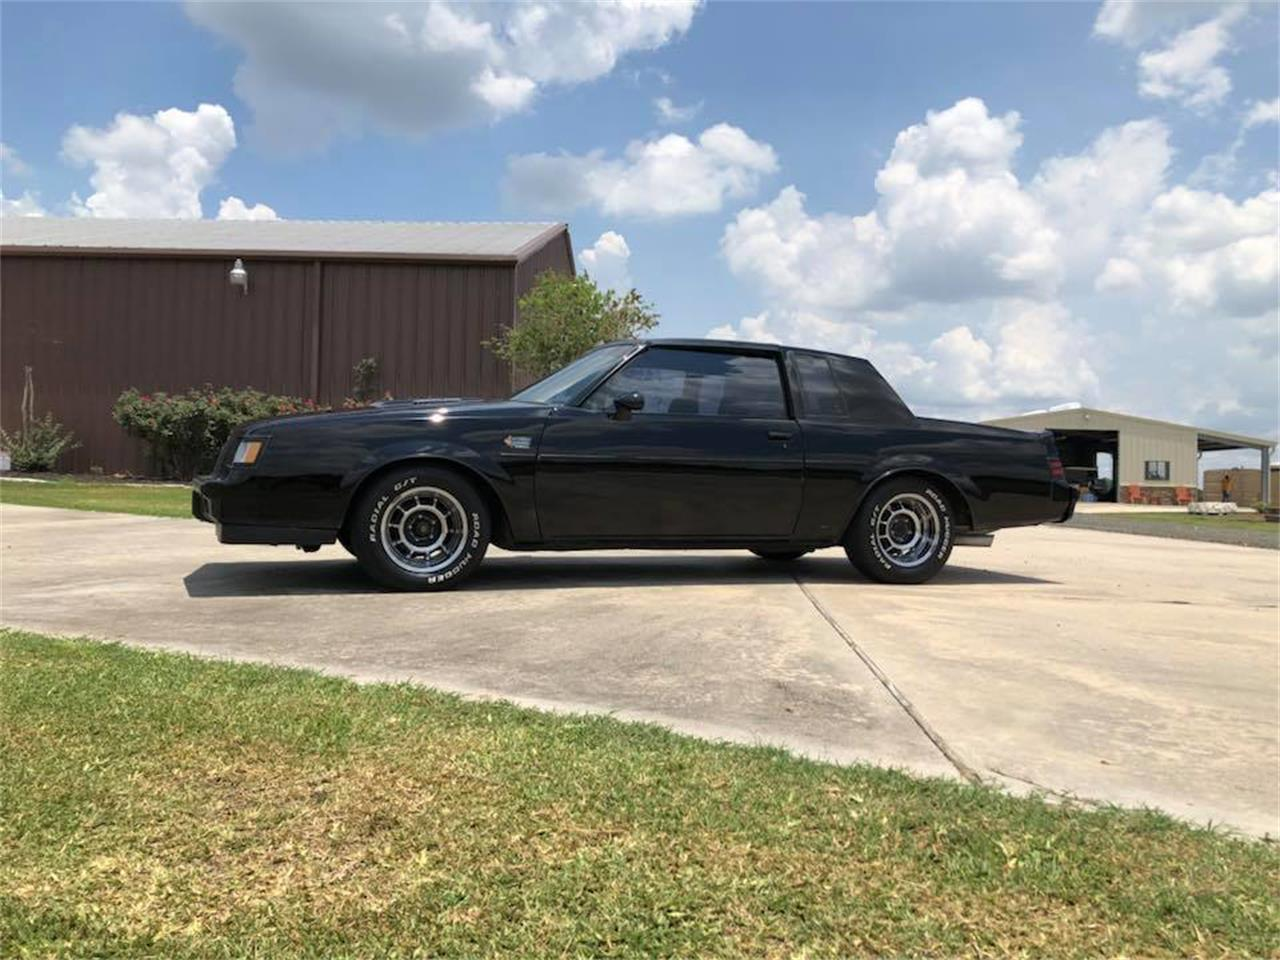 Large Picture of 1986 Grand National located in BEASLEY Texas - $35,000.00 Offered by a Private Seller - Q8HL